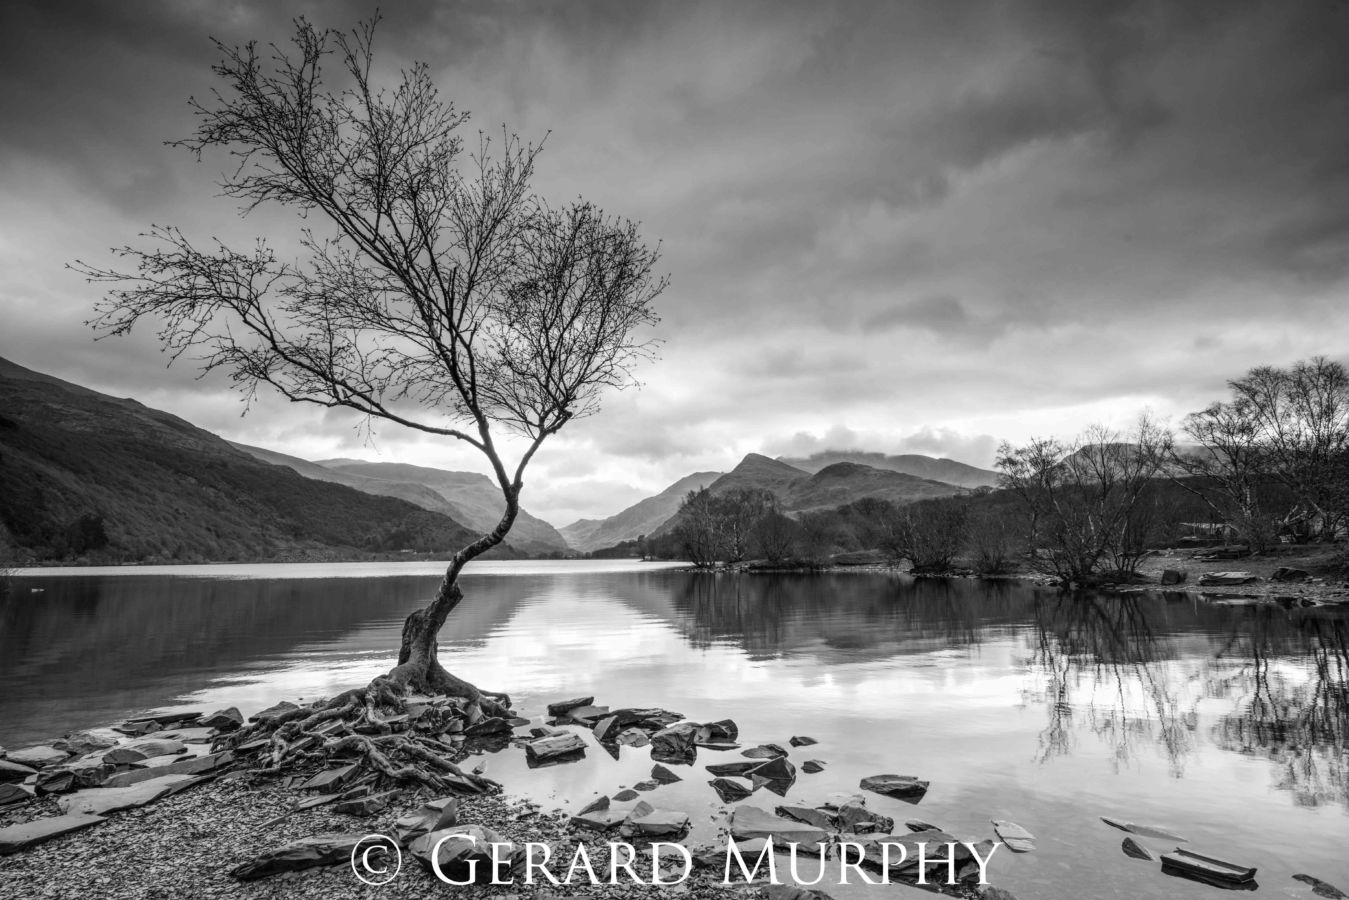 Lone Tree by Gerard Murphy - black and white photograph of a tree at the edge of a loch